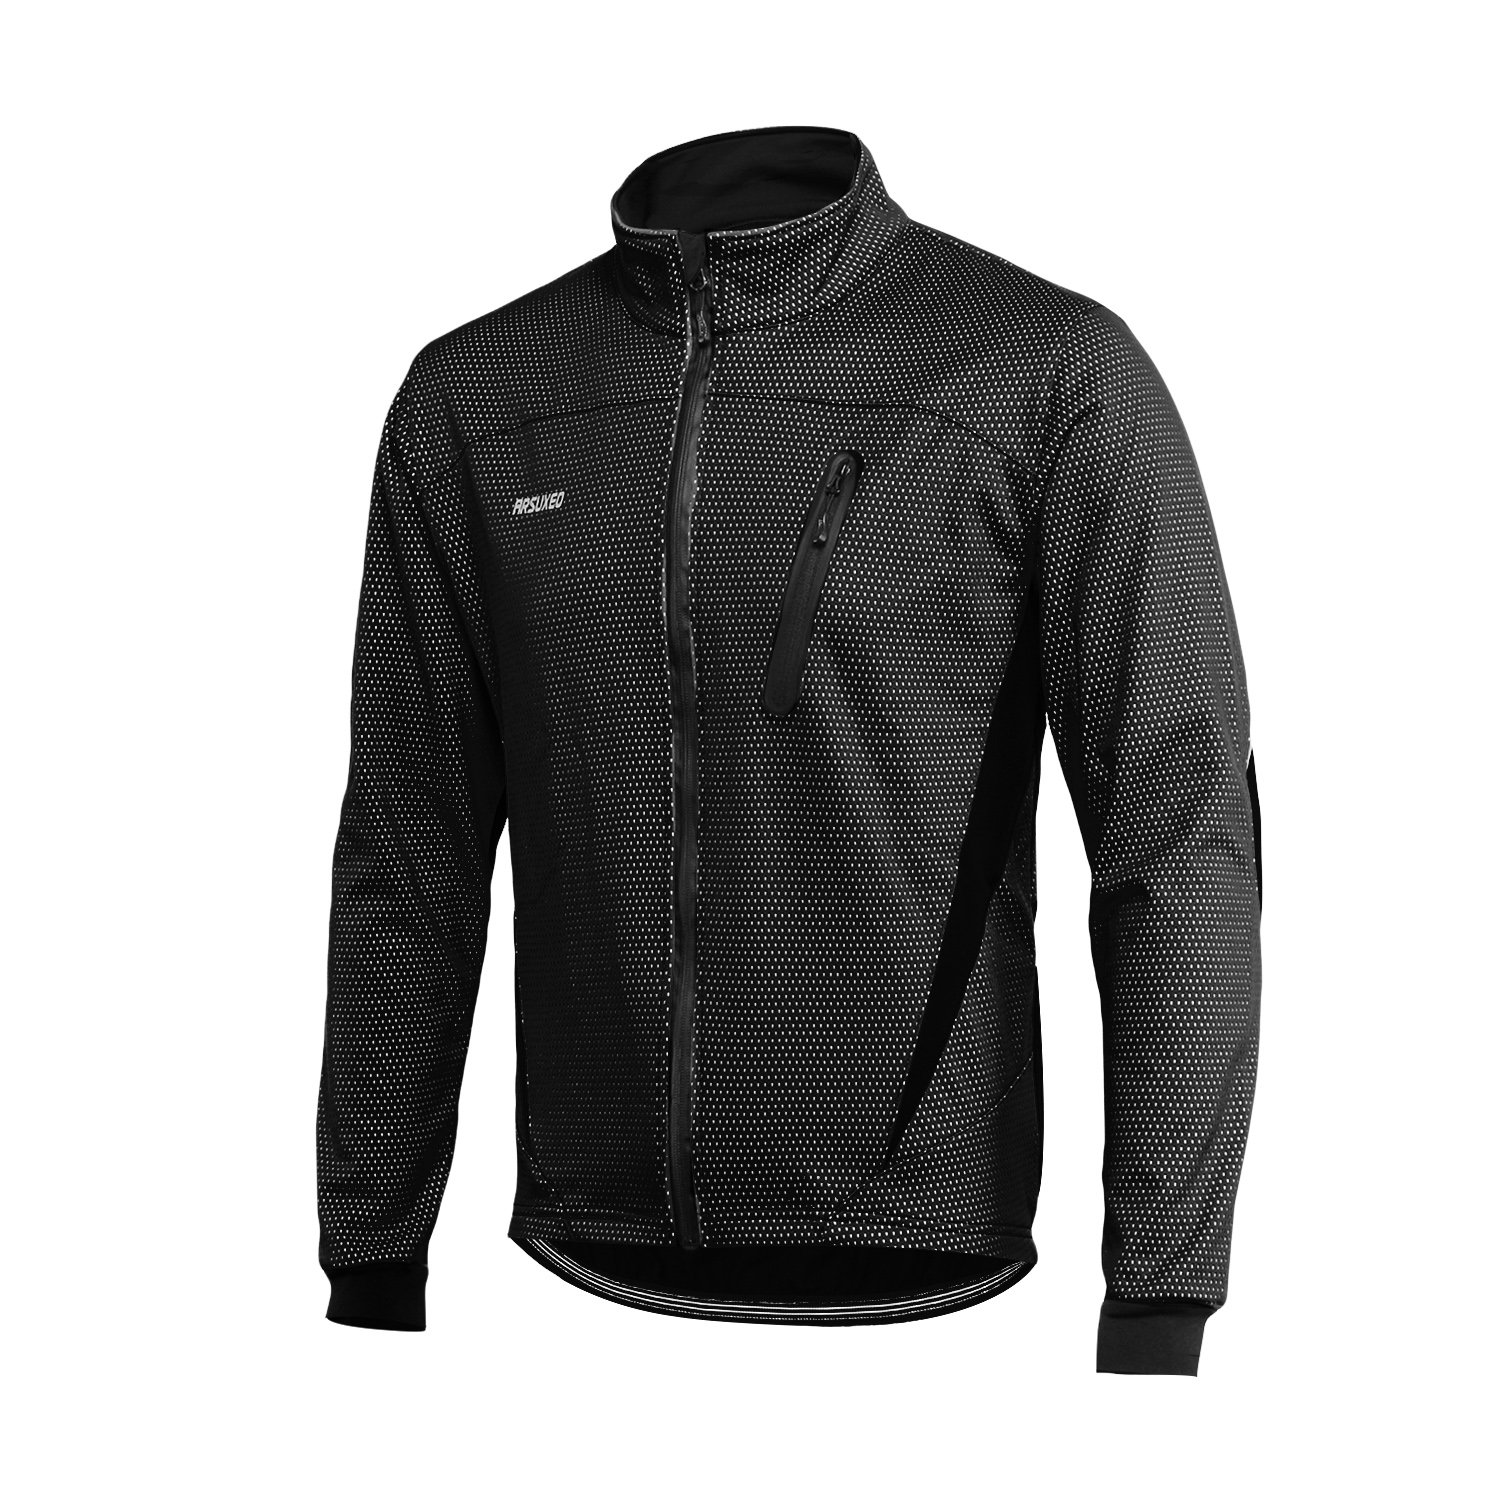 ARSUXEO Winter Warm UP Thermal Fleece Cycling Jacket Windproof Waterproof Breathalbe 16H Black Size Large by ARSUXEO